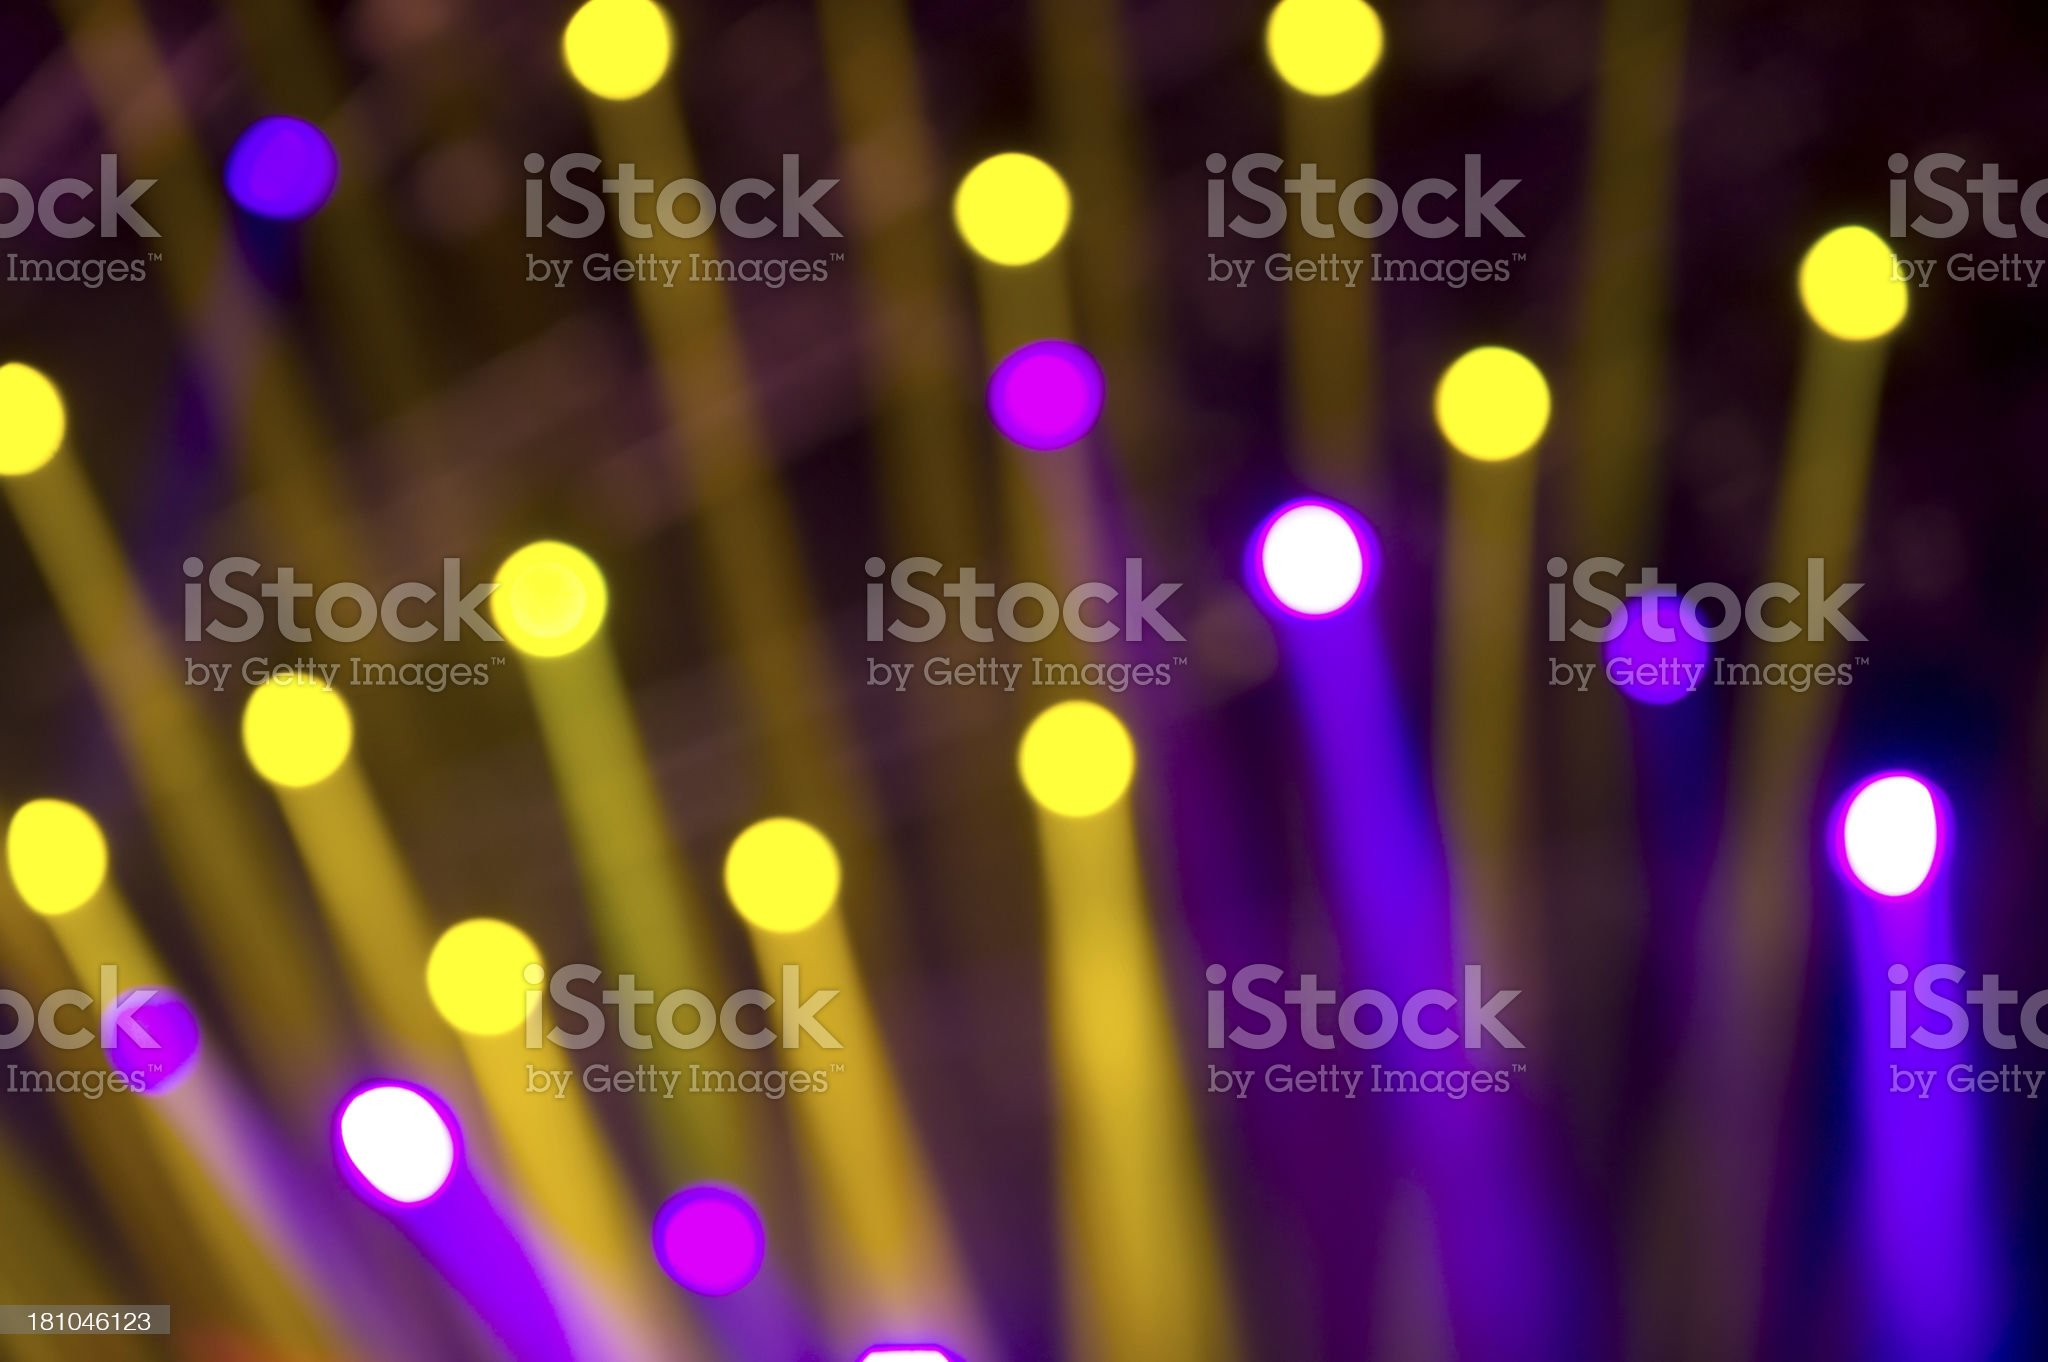 Spotlights Abstract royalty-free stock photo